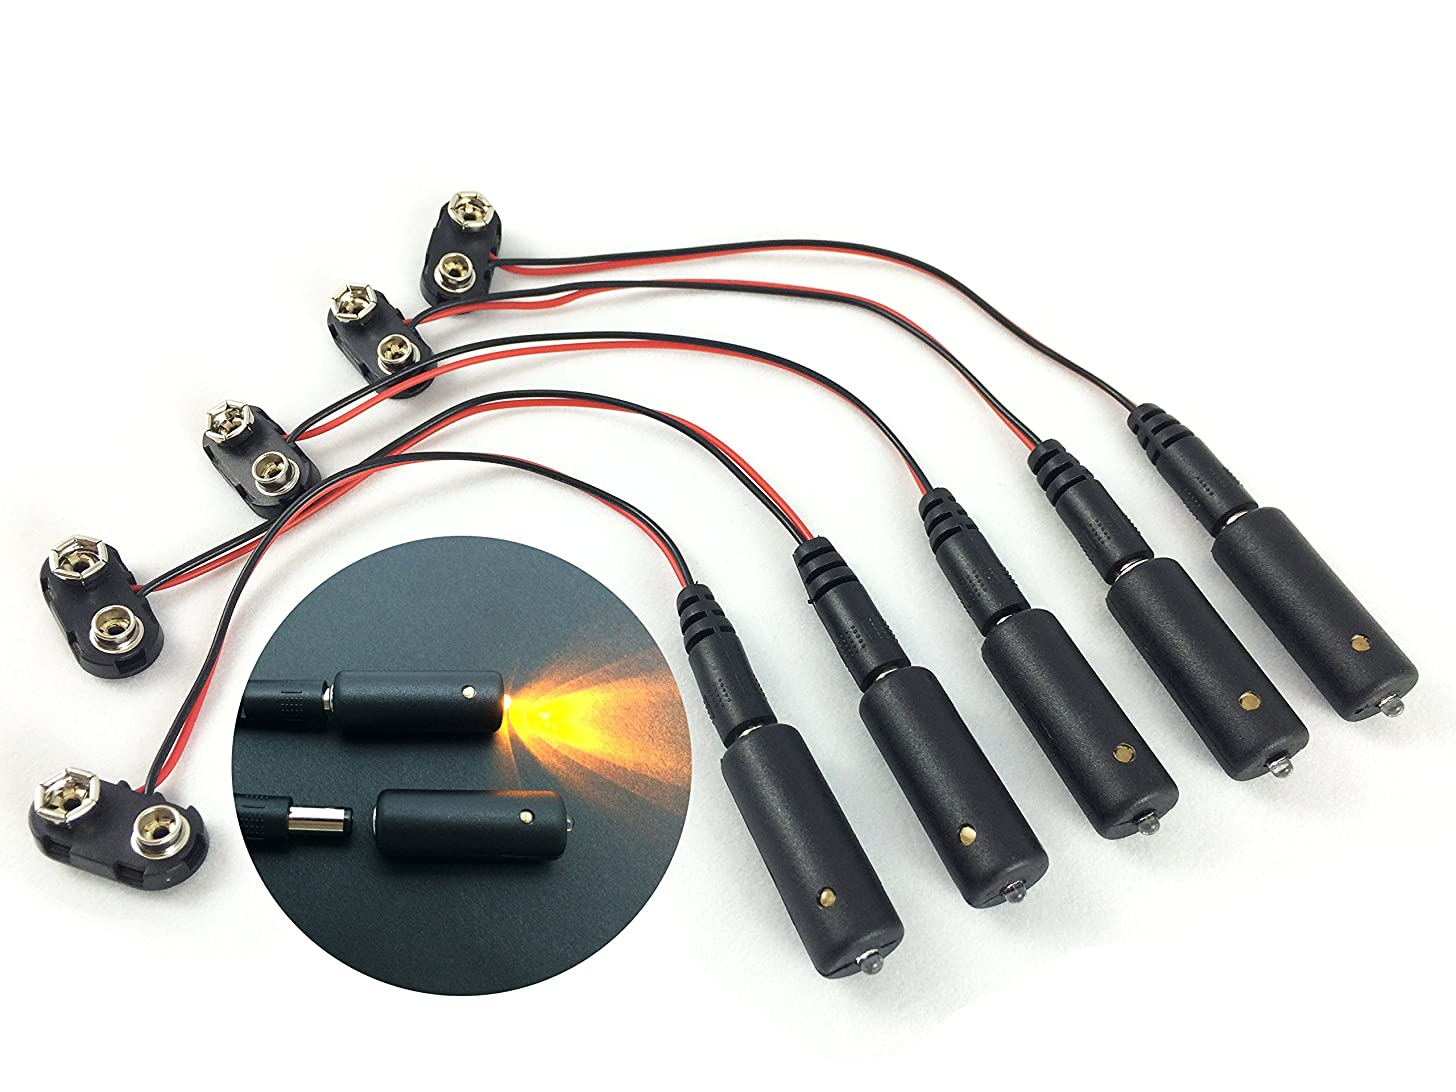 5 Pack, Sunset Amber LED 9 Volt Battery Operated Micro Effects Light for Scenery Props and Models